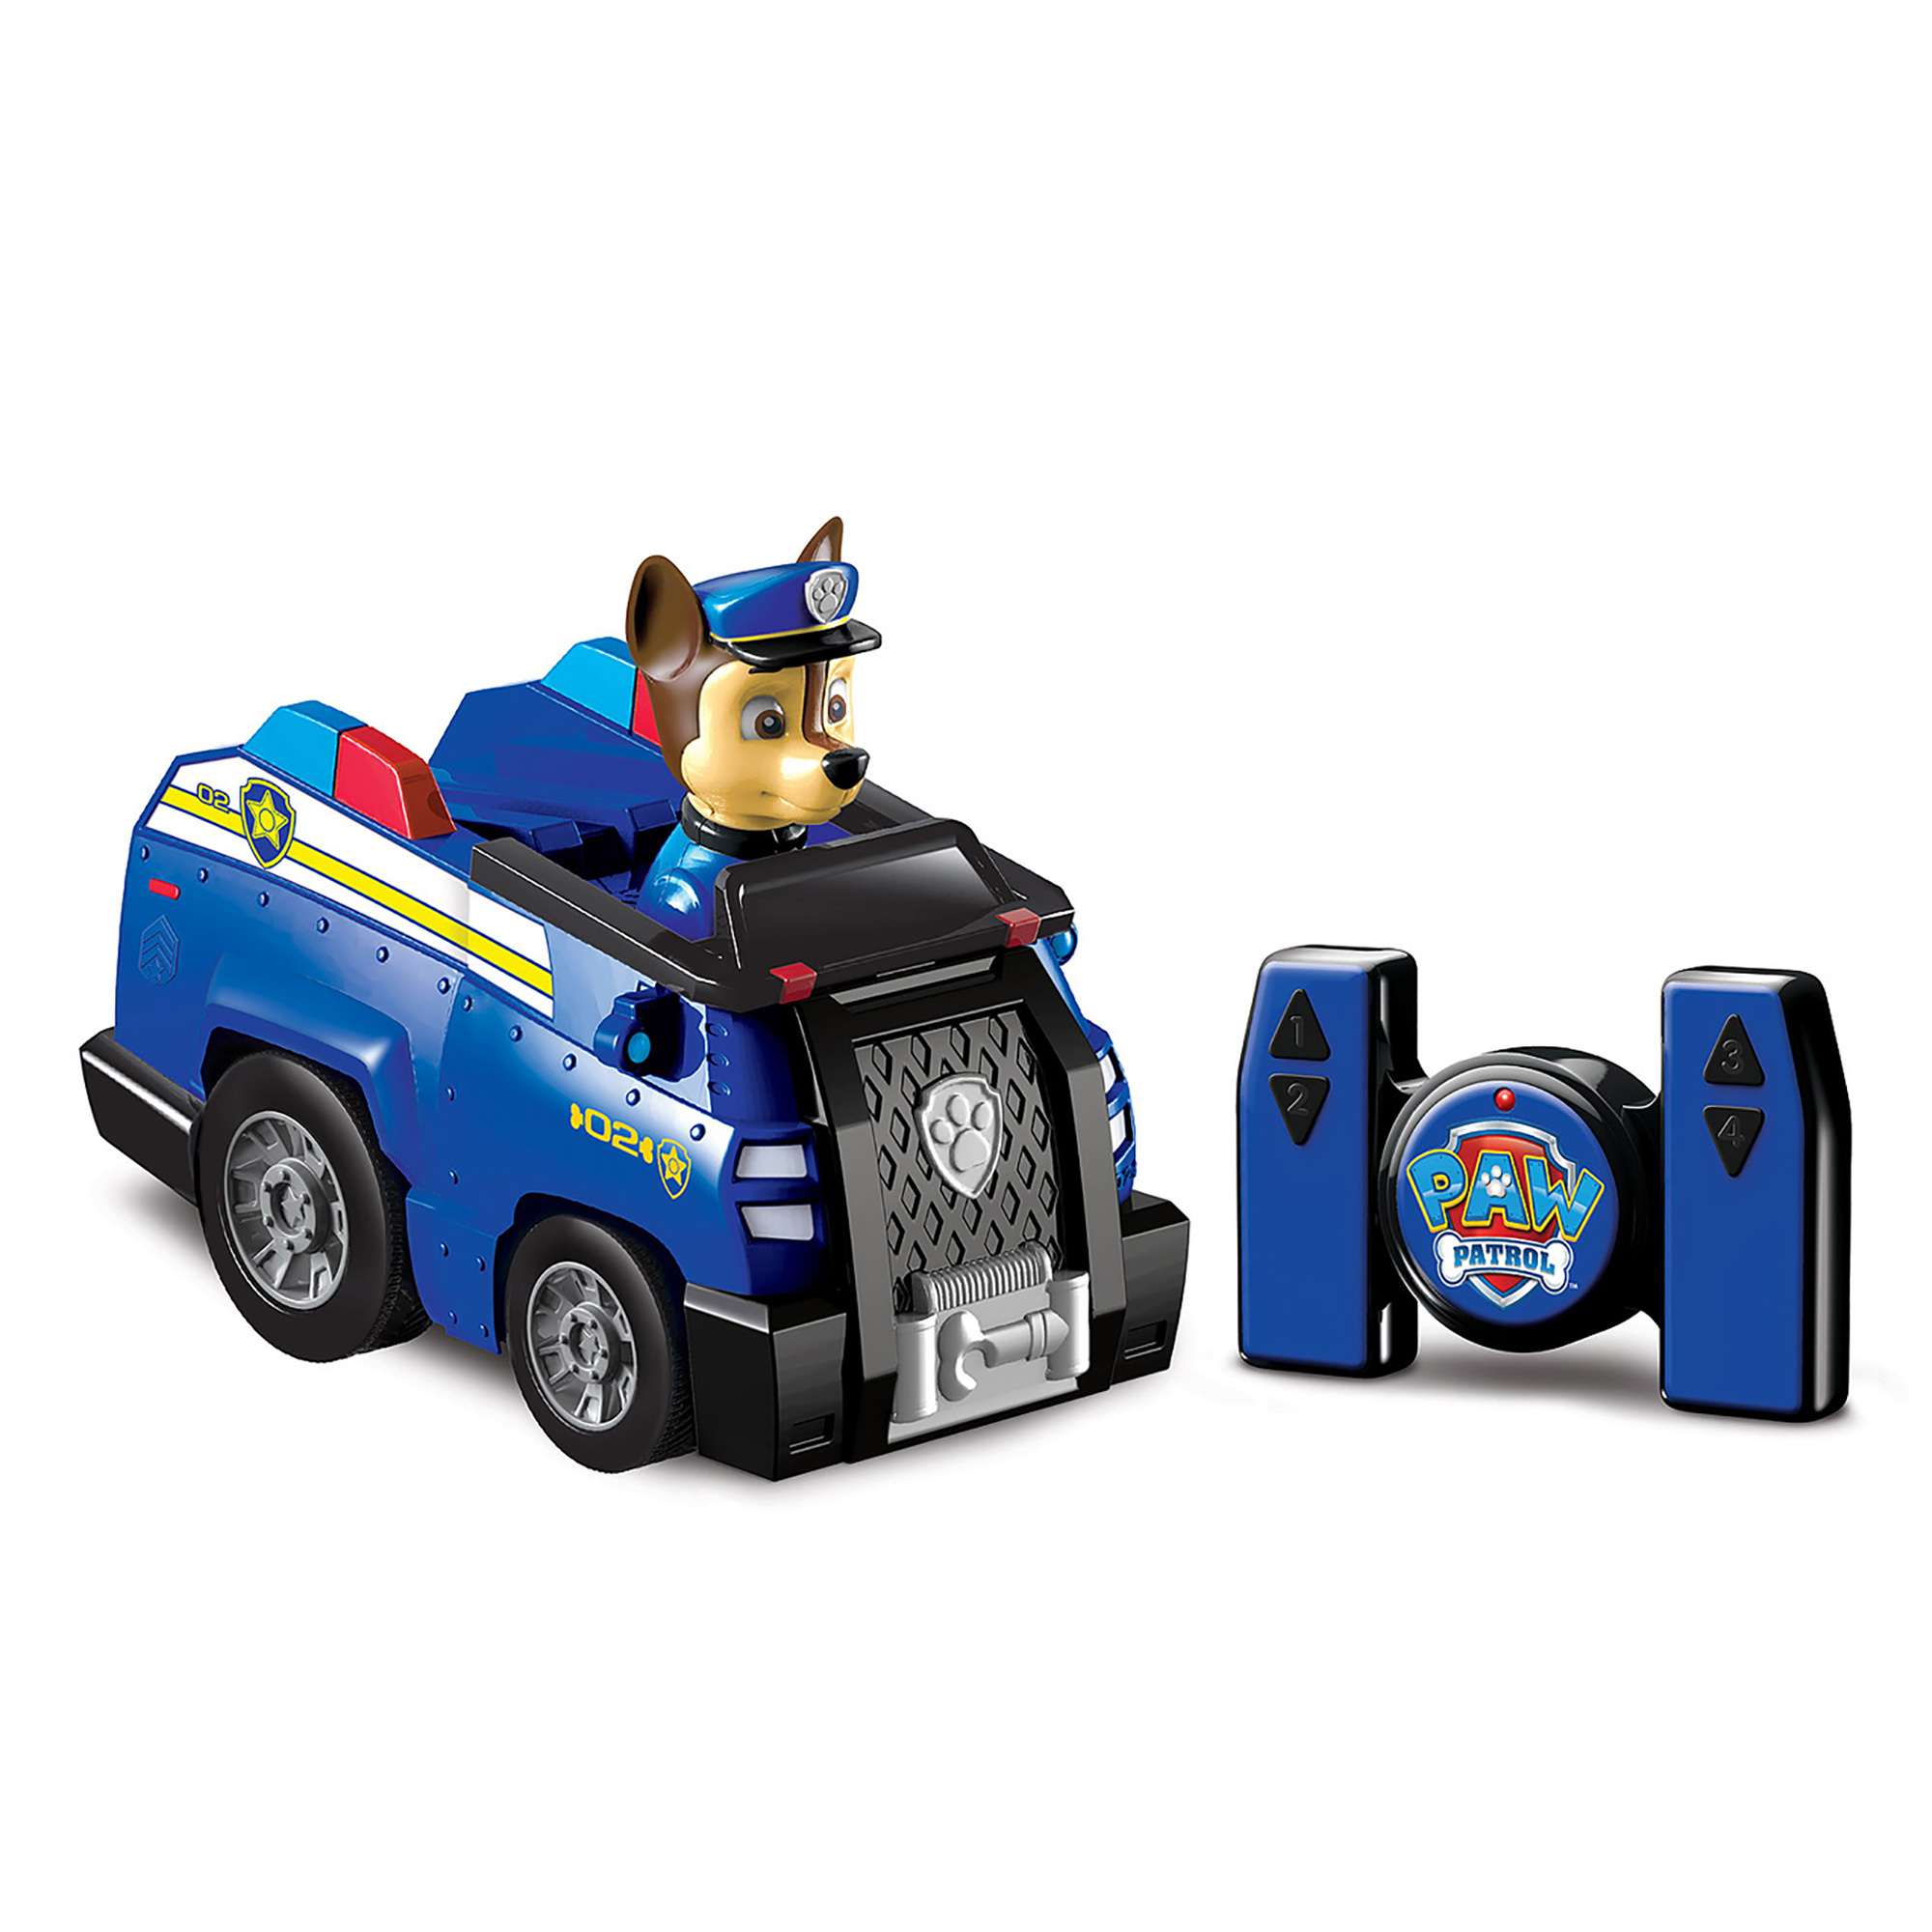 Jamn Products Paw Patrol My First Preschool Remote Control, Chase by Jam'n Products